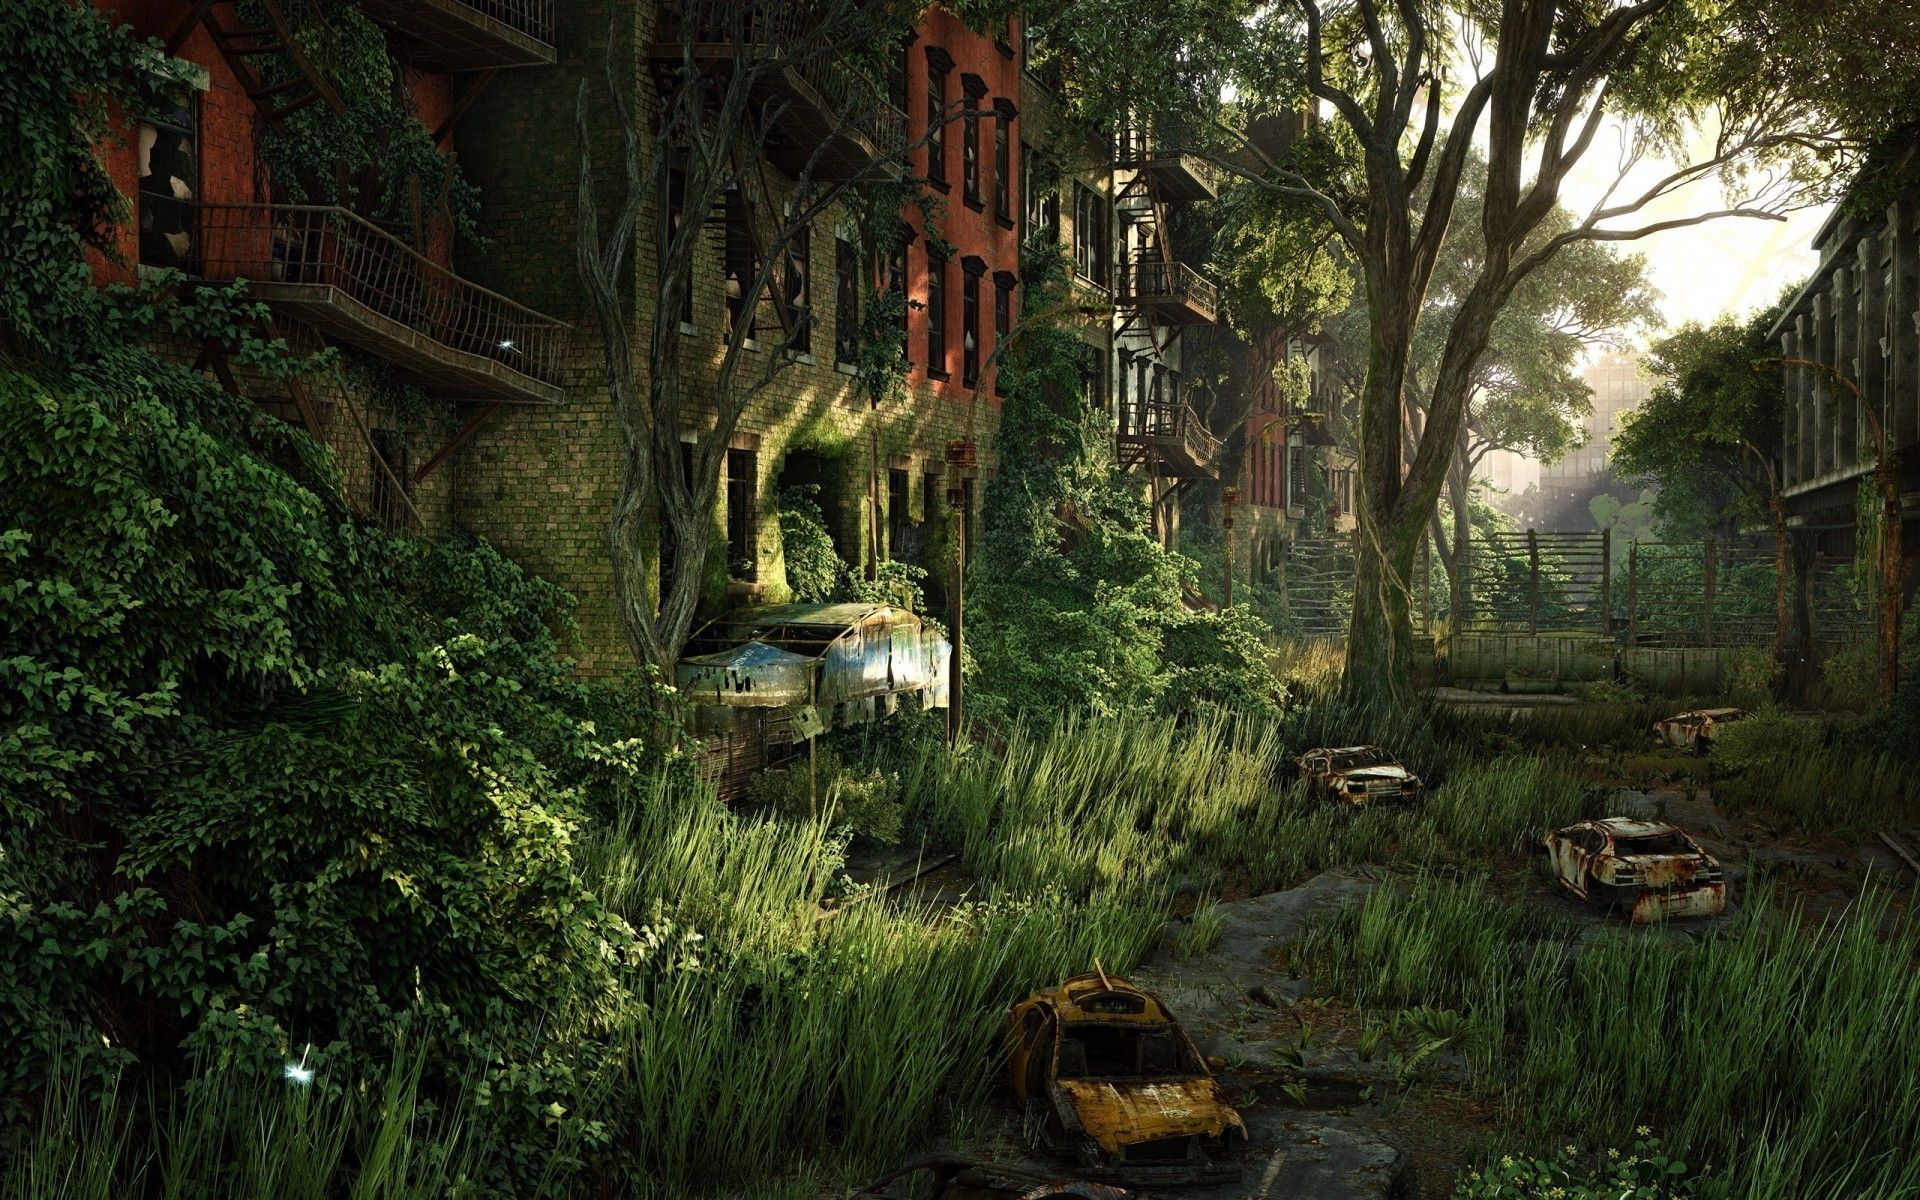 crysis 3, #overgrown, #crysis, #forest, #video games, #nature